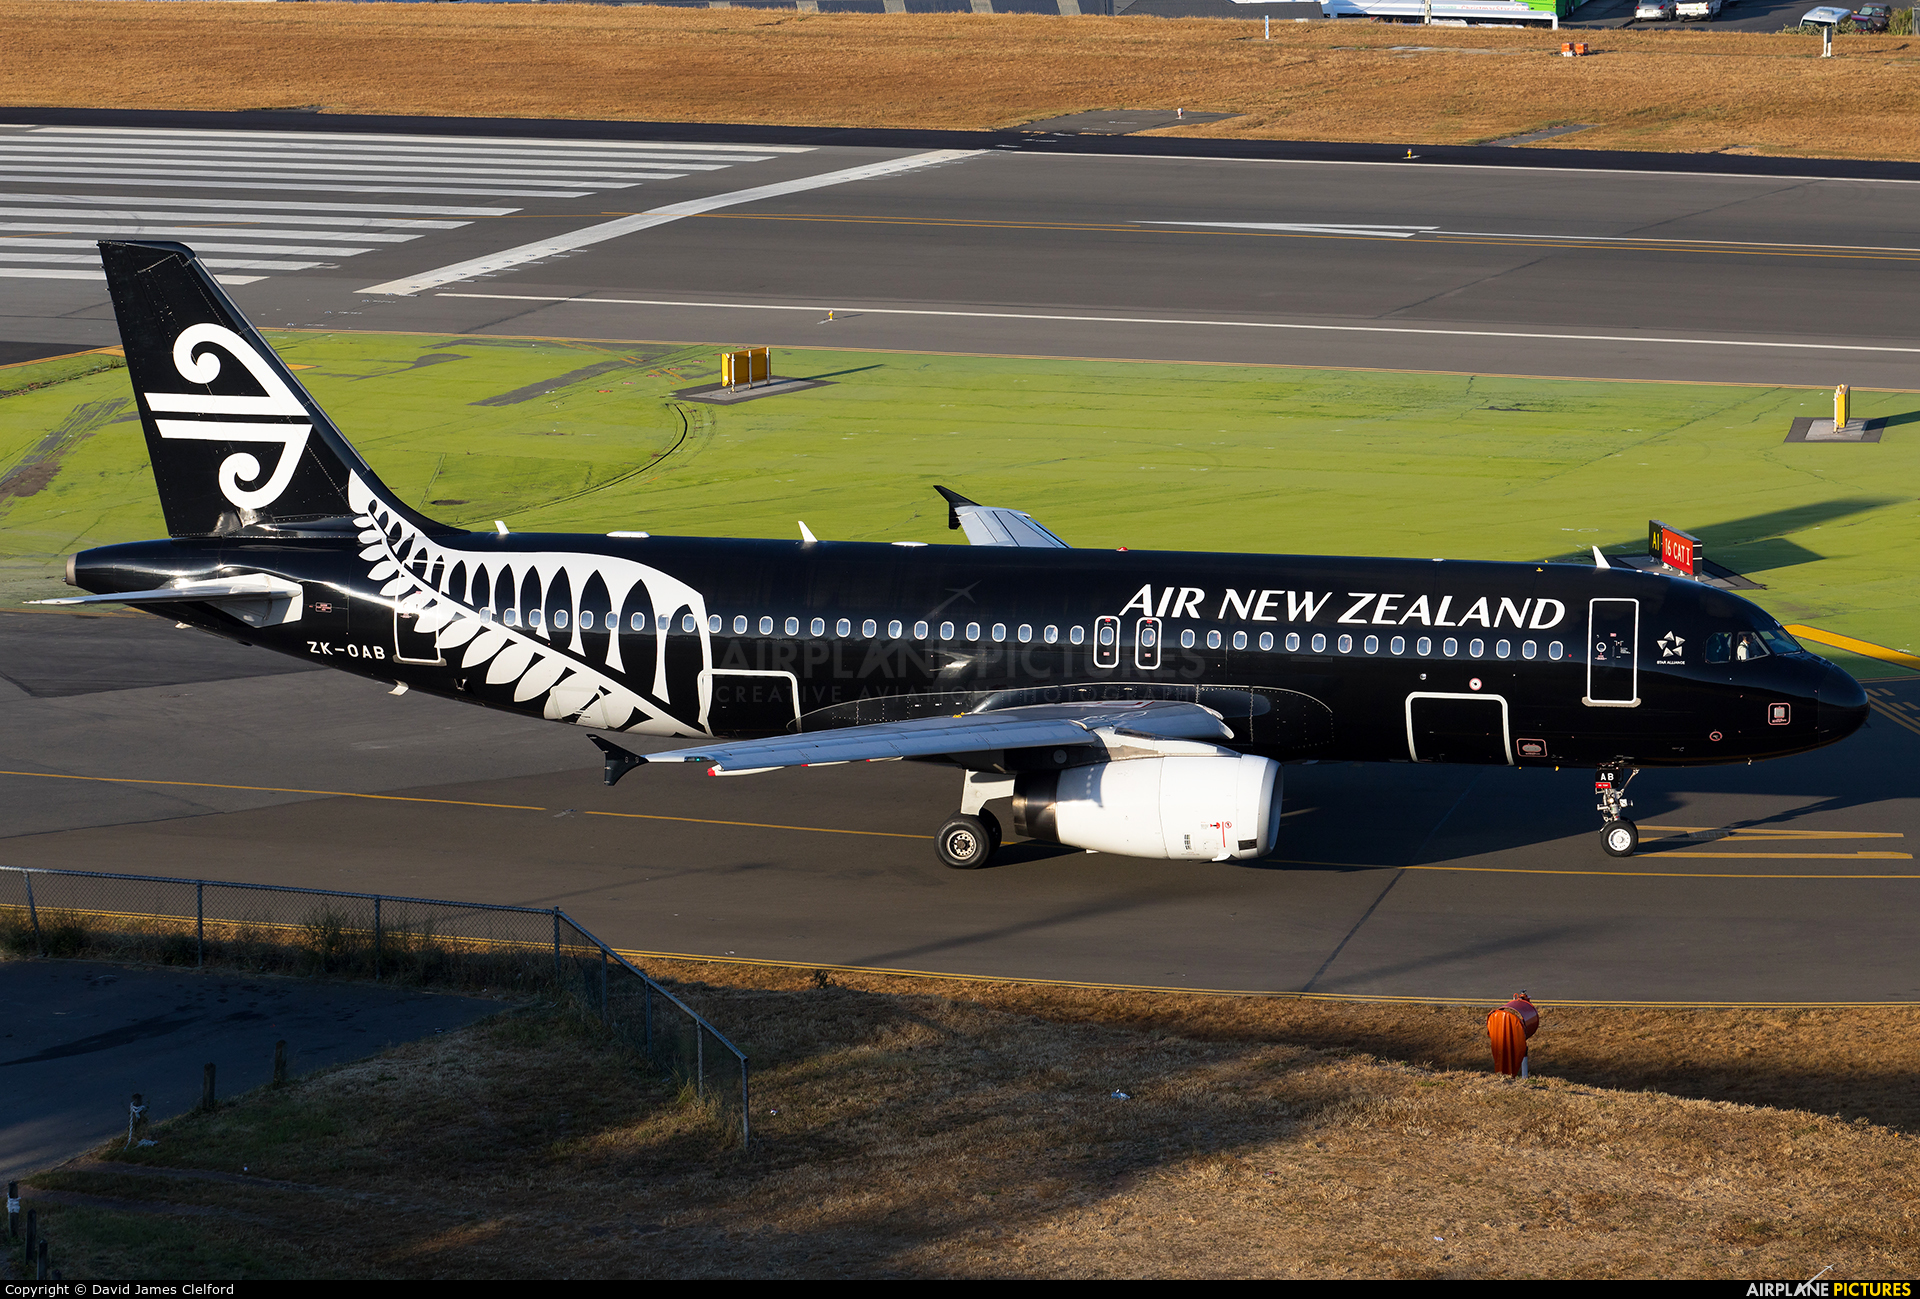 Air New Zealand ZK-OAB aircraft at Wellington Intl